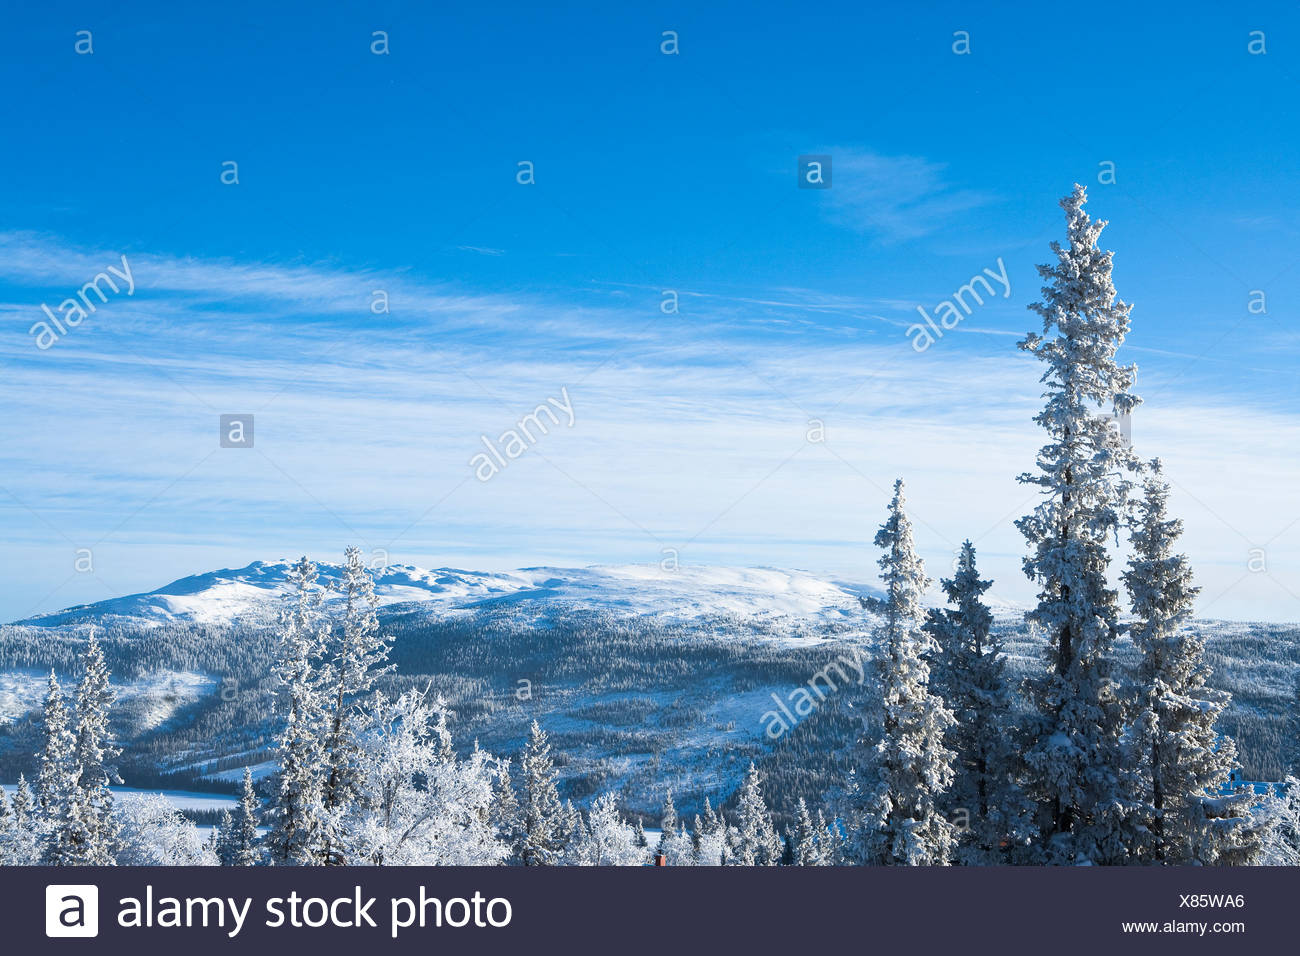 Winter landscape with forest - Stock Image